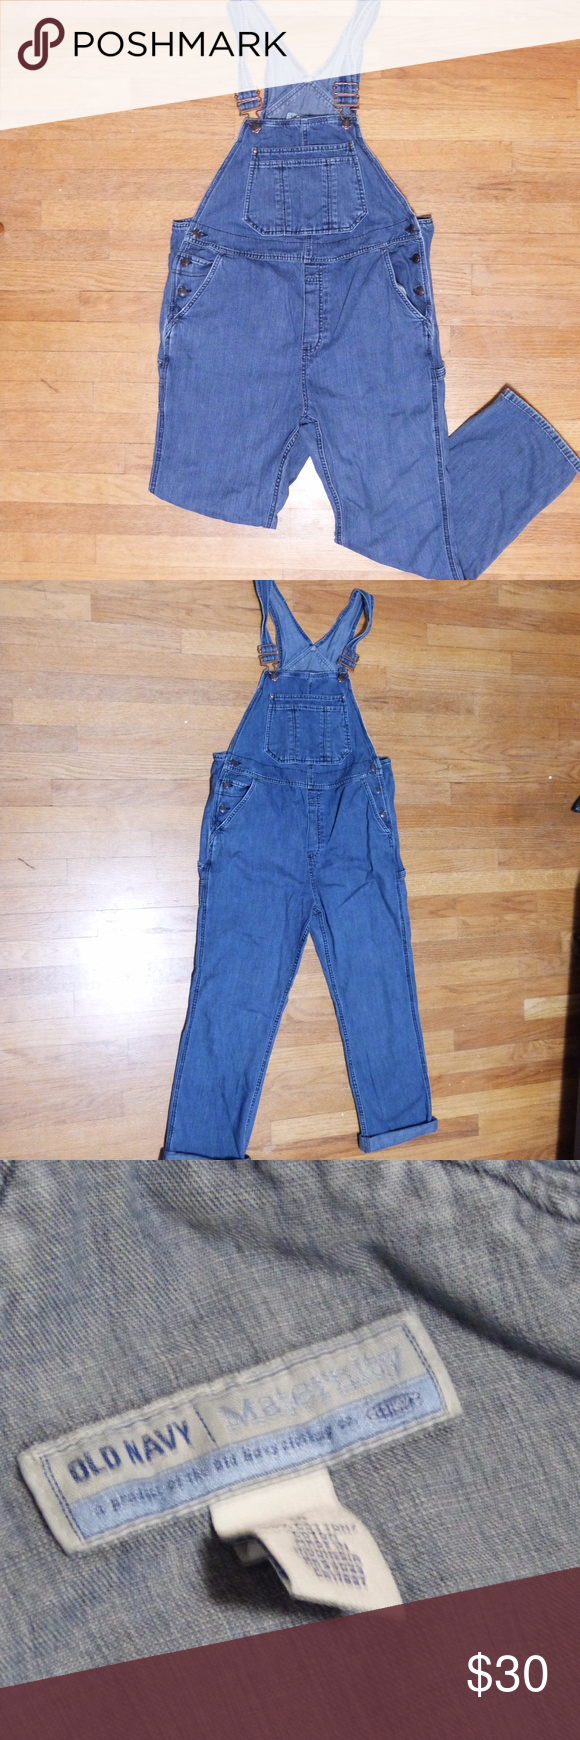 11b1c9cff3030 Old Navy Maternity Overalls Maternity carpenter overalls by Old Navy. Size  Medium, 100% Cotton Inseam - 28